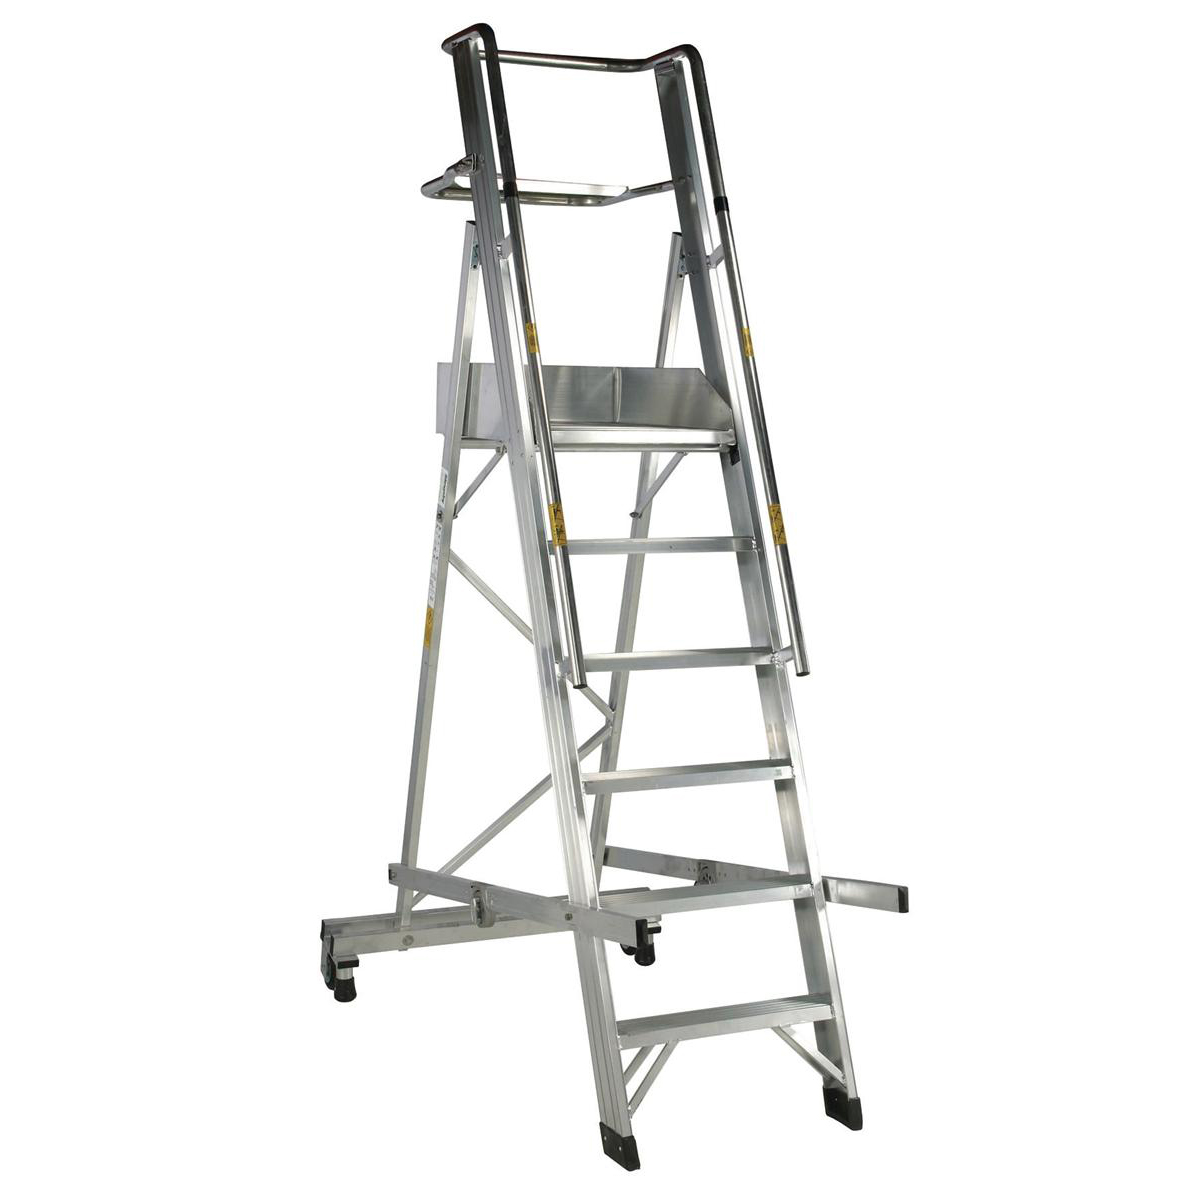 Platform Trucks Warehouse Ladder Mobile Folding 6 Tread Aluminium